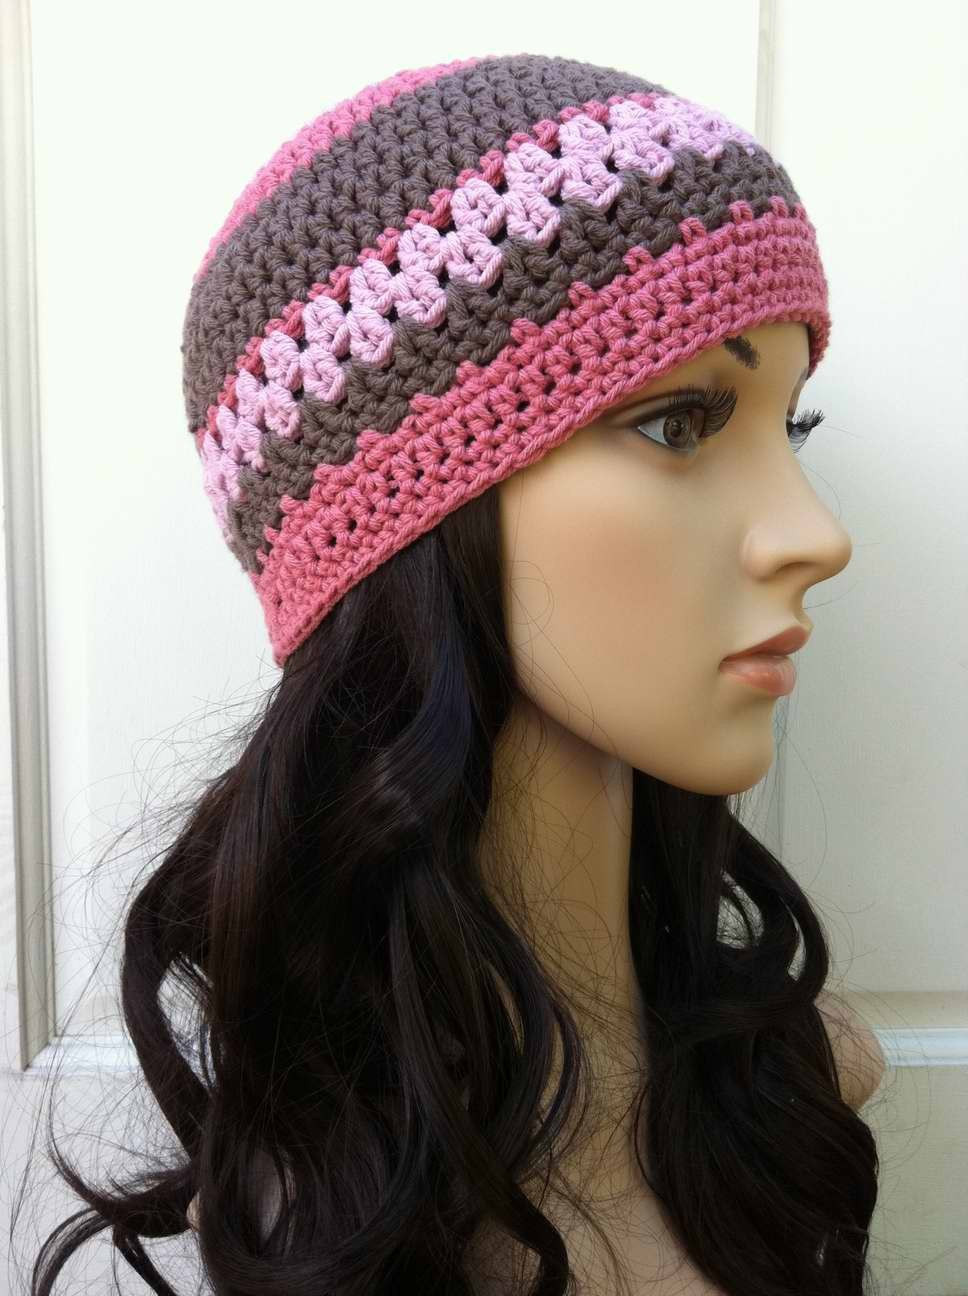 Free Crochet Hats Awesome Crochet Hats for Women Of Incredible 43 Photos Free Crochet Hats